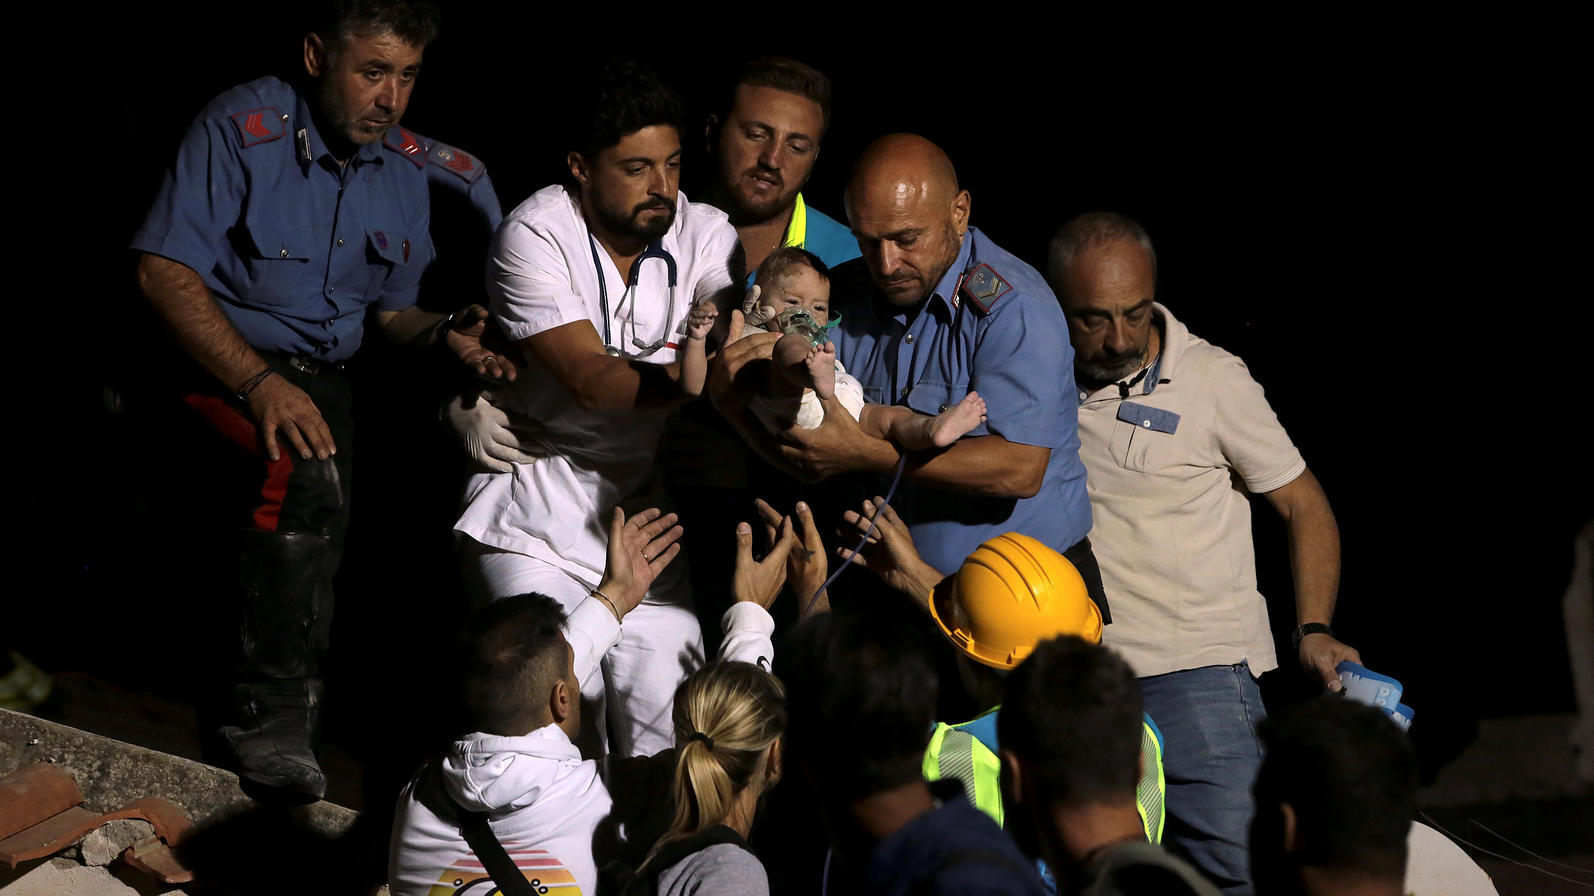 Italian Carabinieri police officer and a doctor carry a child after an earthquake hit the island of Ischia, off the coast of Naples, Italy August 22, 2017. REUTERS/Antonio Dilaurenzo NO RESALES. NO ARCHIVE